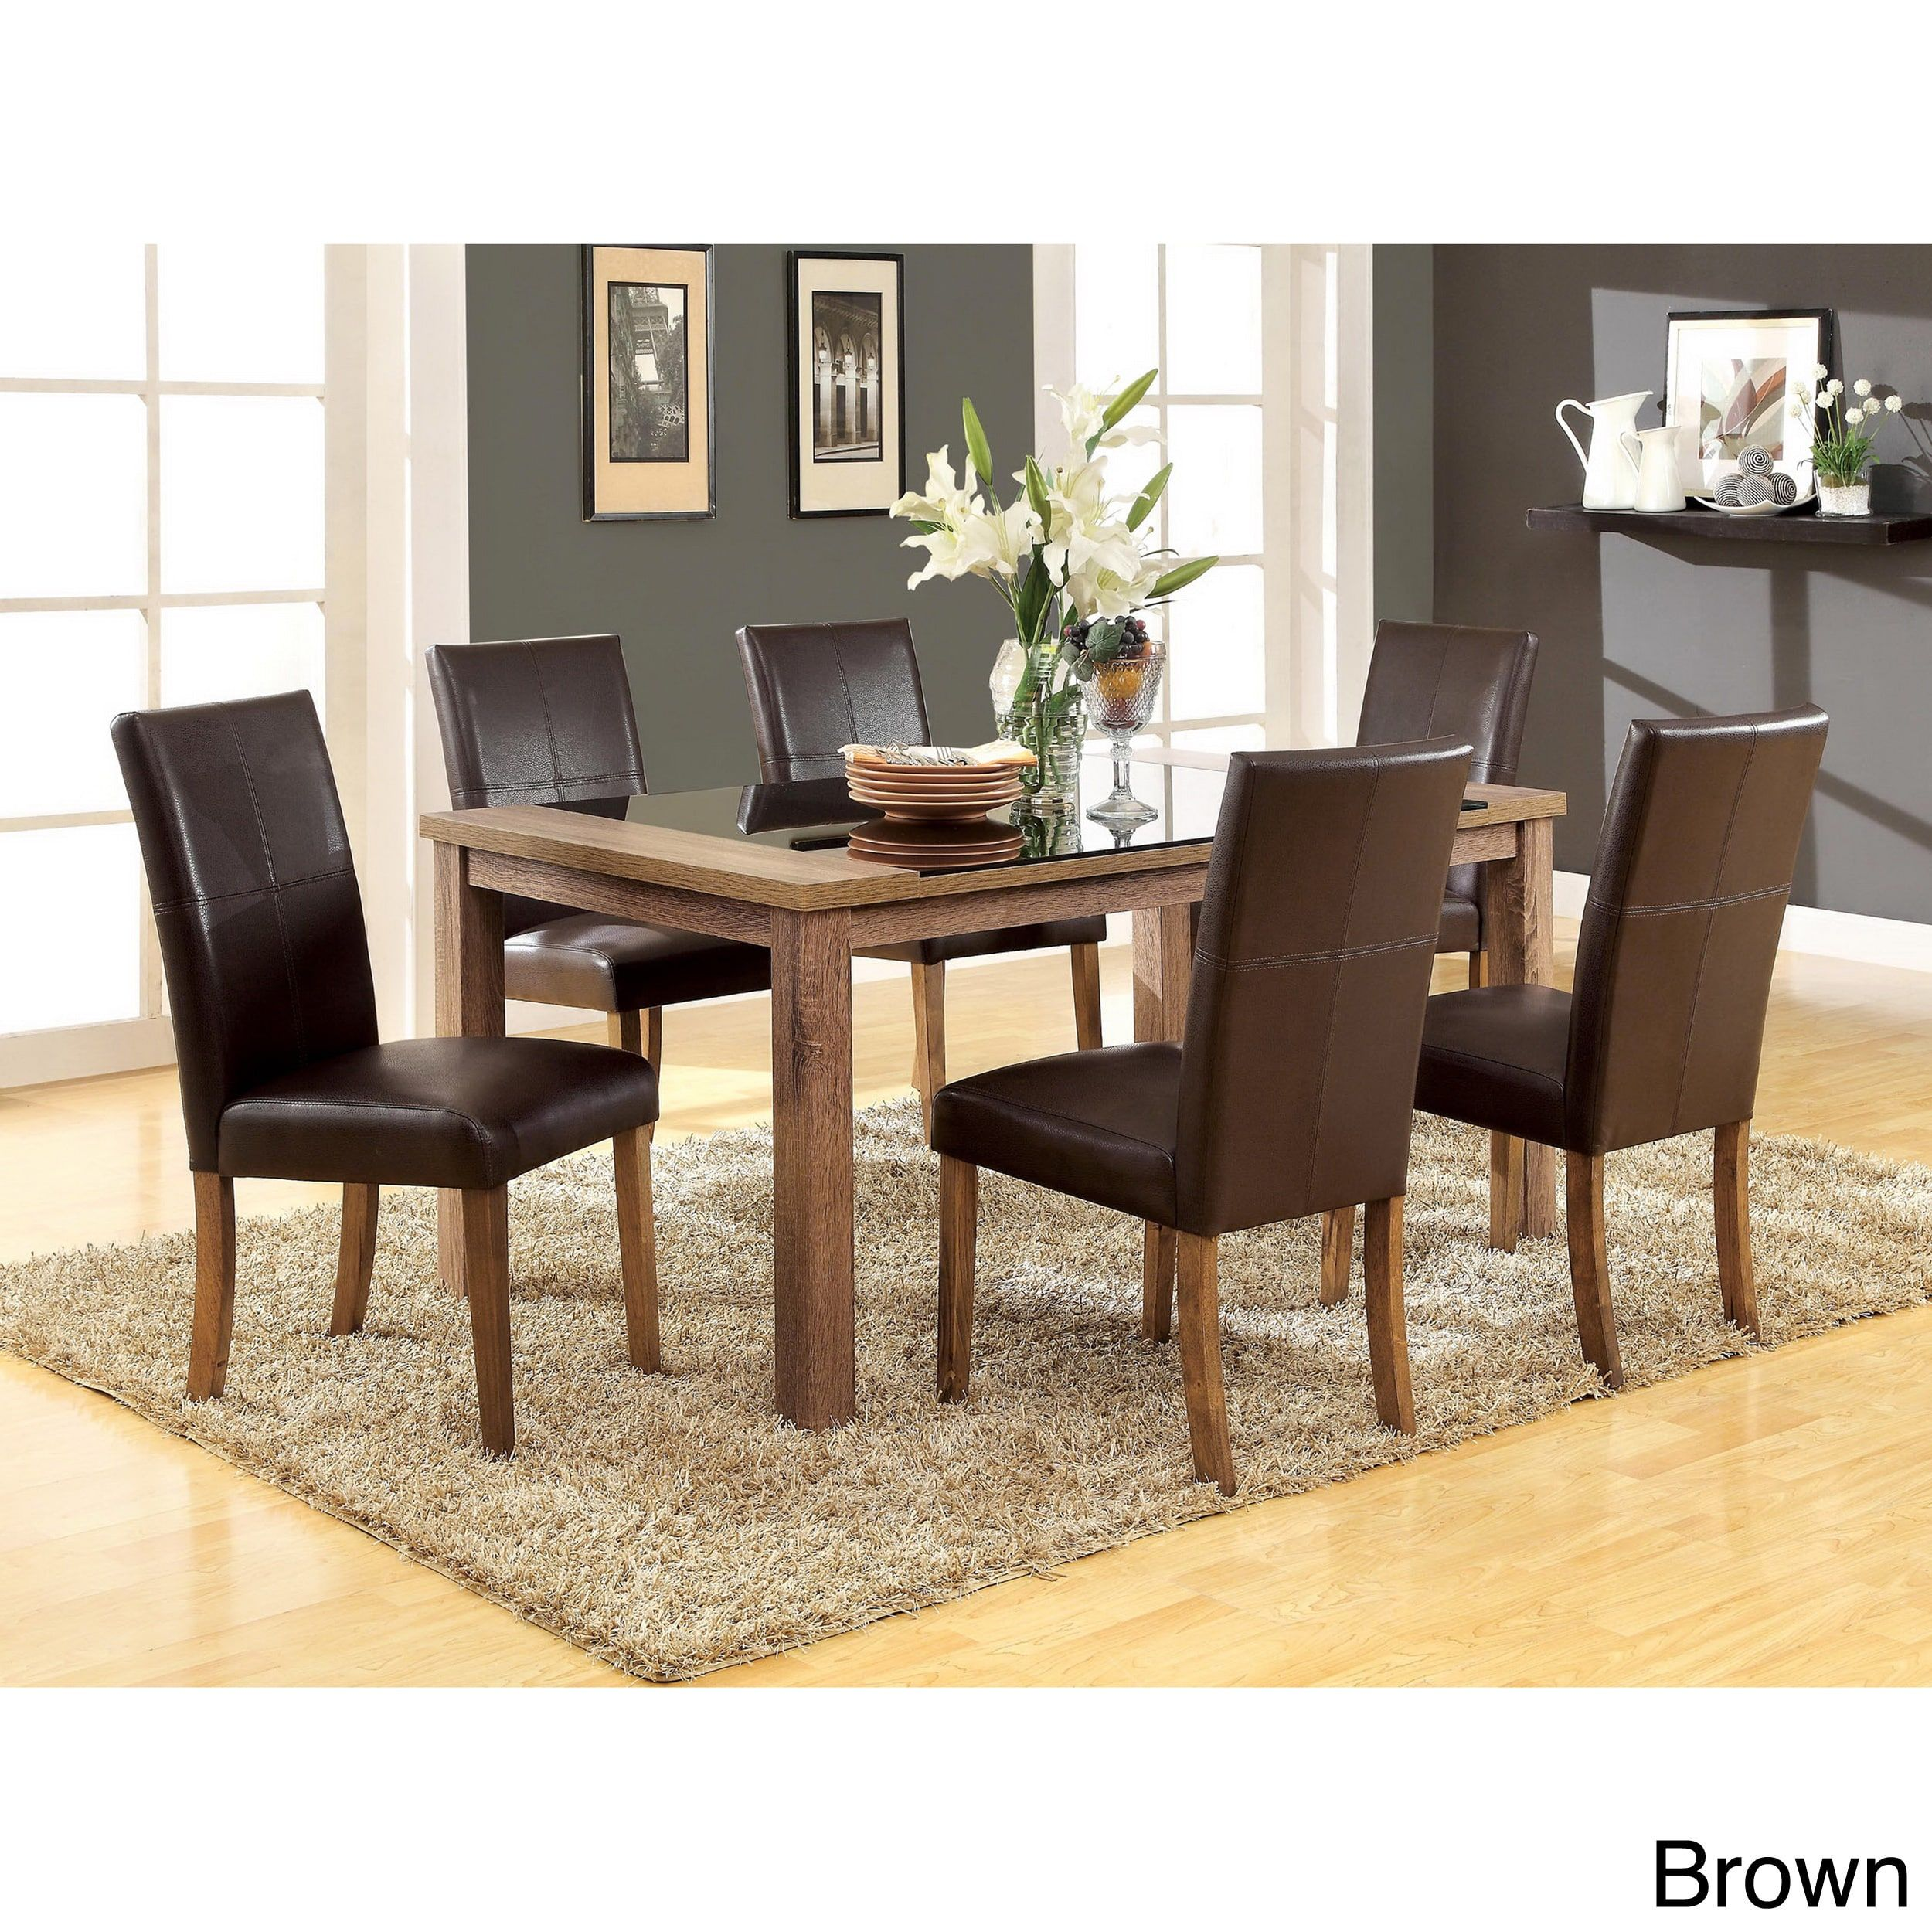 Furniture Of America Sundrey Transitional Light Oak 7 Piece Contemporary  Dining Set (Brown Leatherette Chair), Size 7 Piece Sets